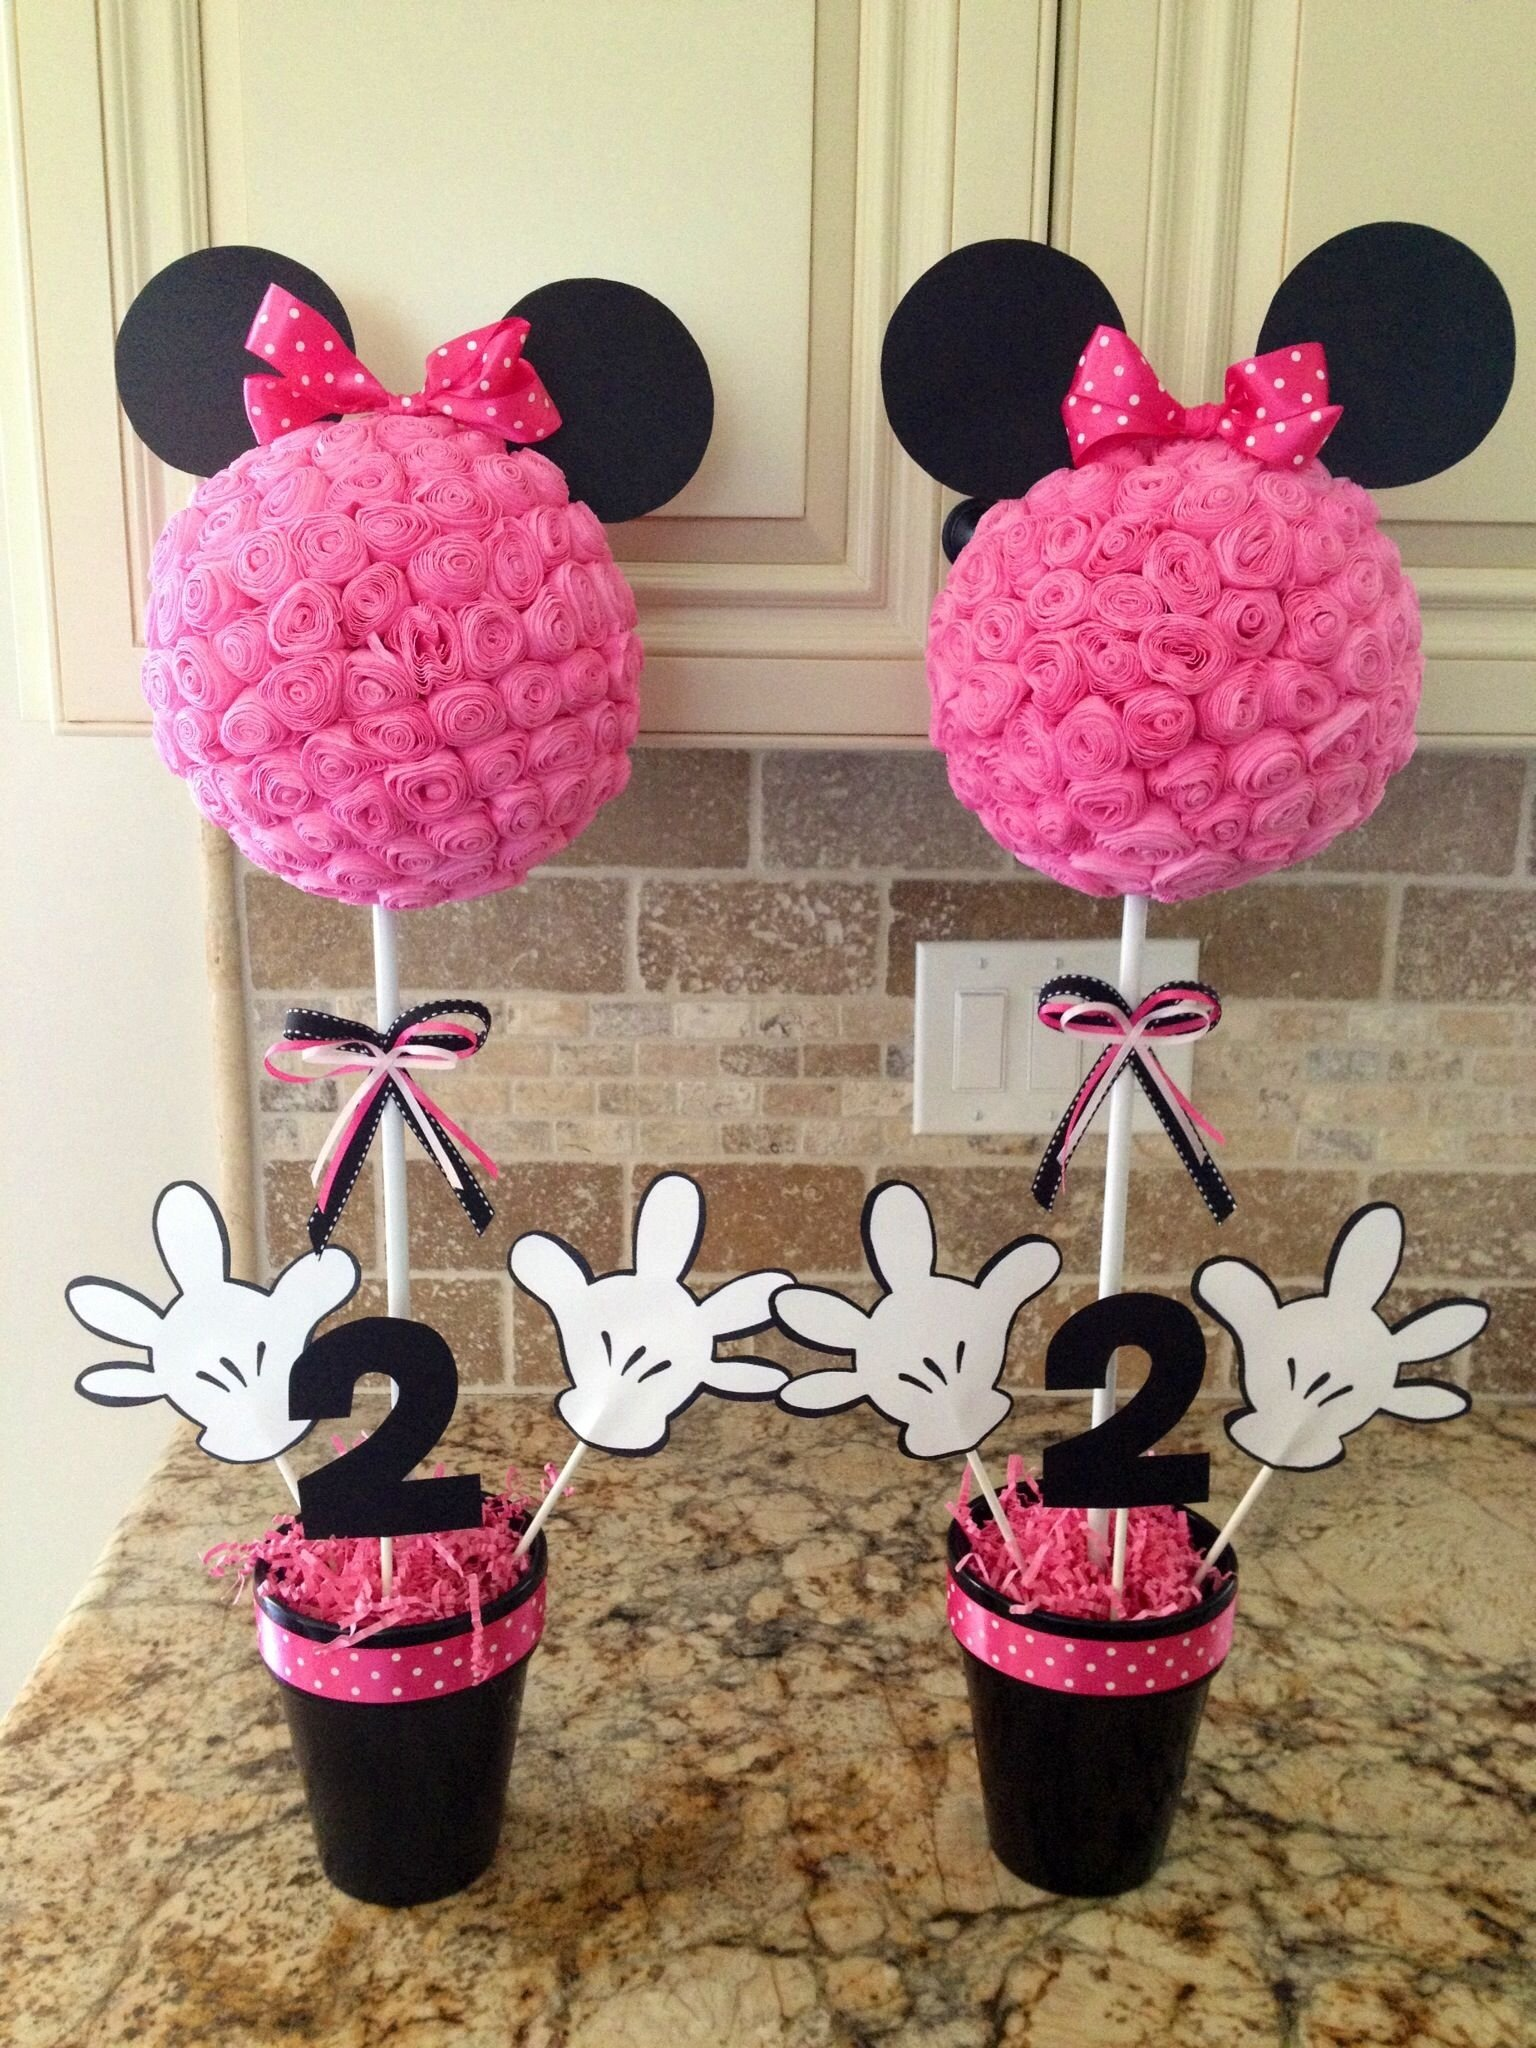 10 Ideal Minnie Mouse Party Ideas Pinterest minnie mouse centerpieces minnie mouse pinterest minnie mouse 2